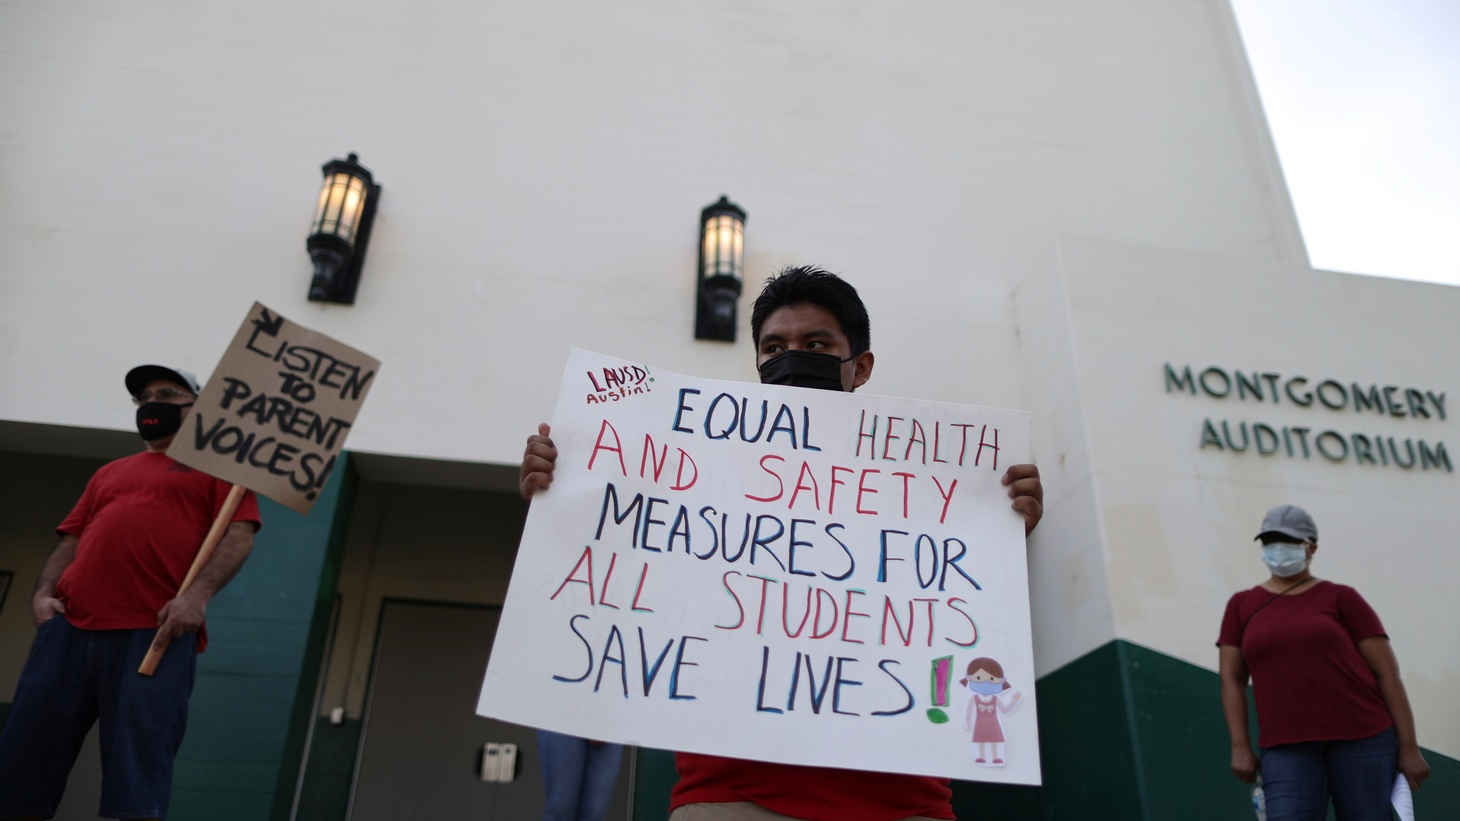 People hold signs at a protest for parents, students, and educators outside Dorsey High School to urge LAUSD not to reopen schools without strong COVID safety measures, during the coronavirus disease outbreak, in Los Angeles, California, U.S., October 15, 2020.